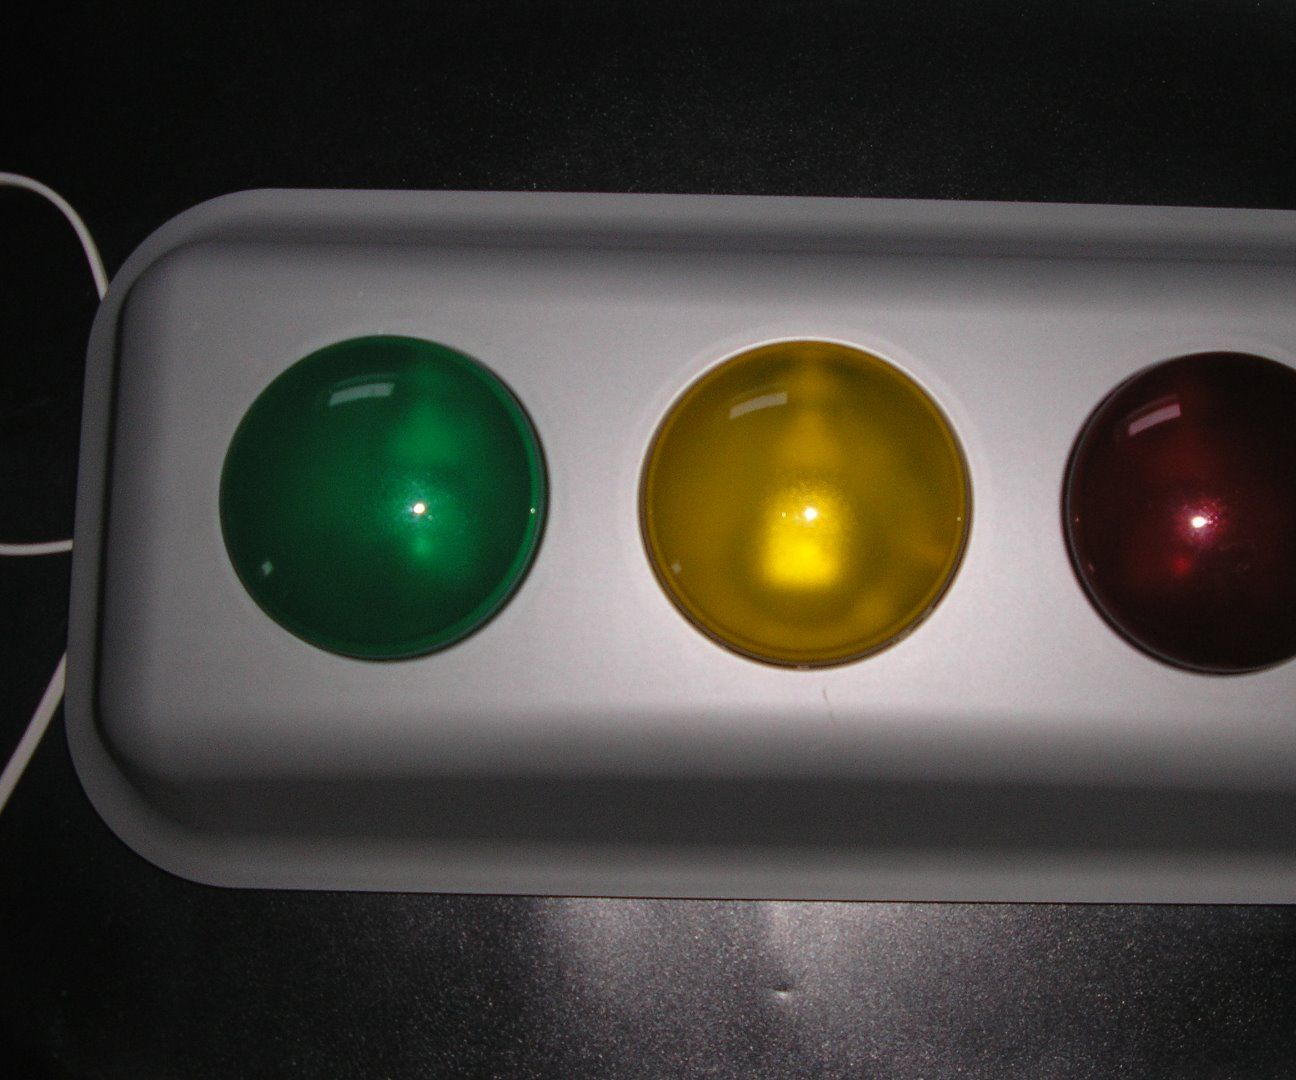 Computer Controlled Traffic Light